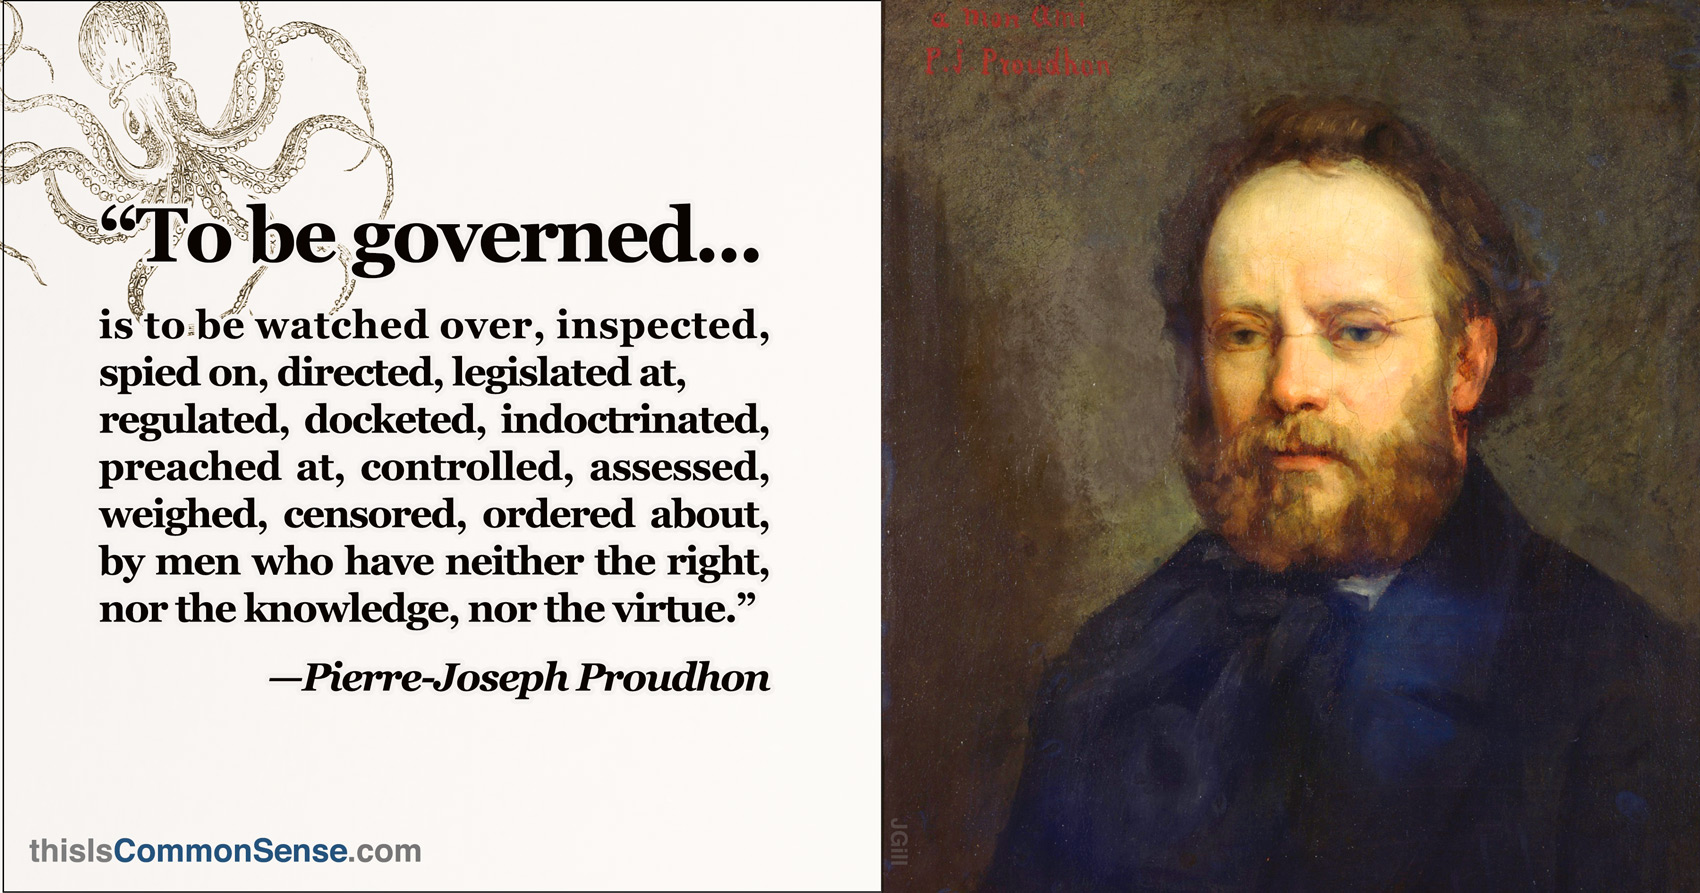 To be governed: Pierre-Joseph_Proudhon